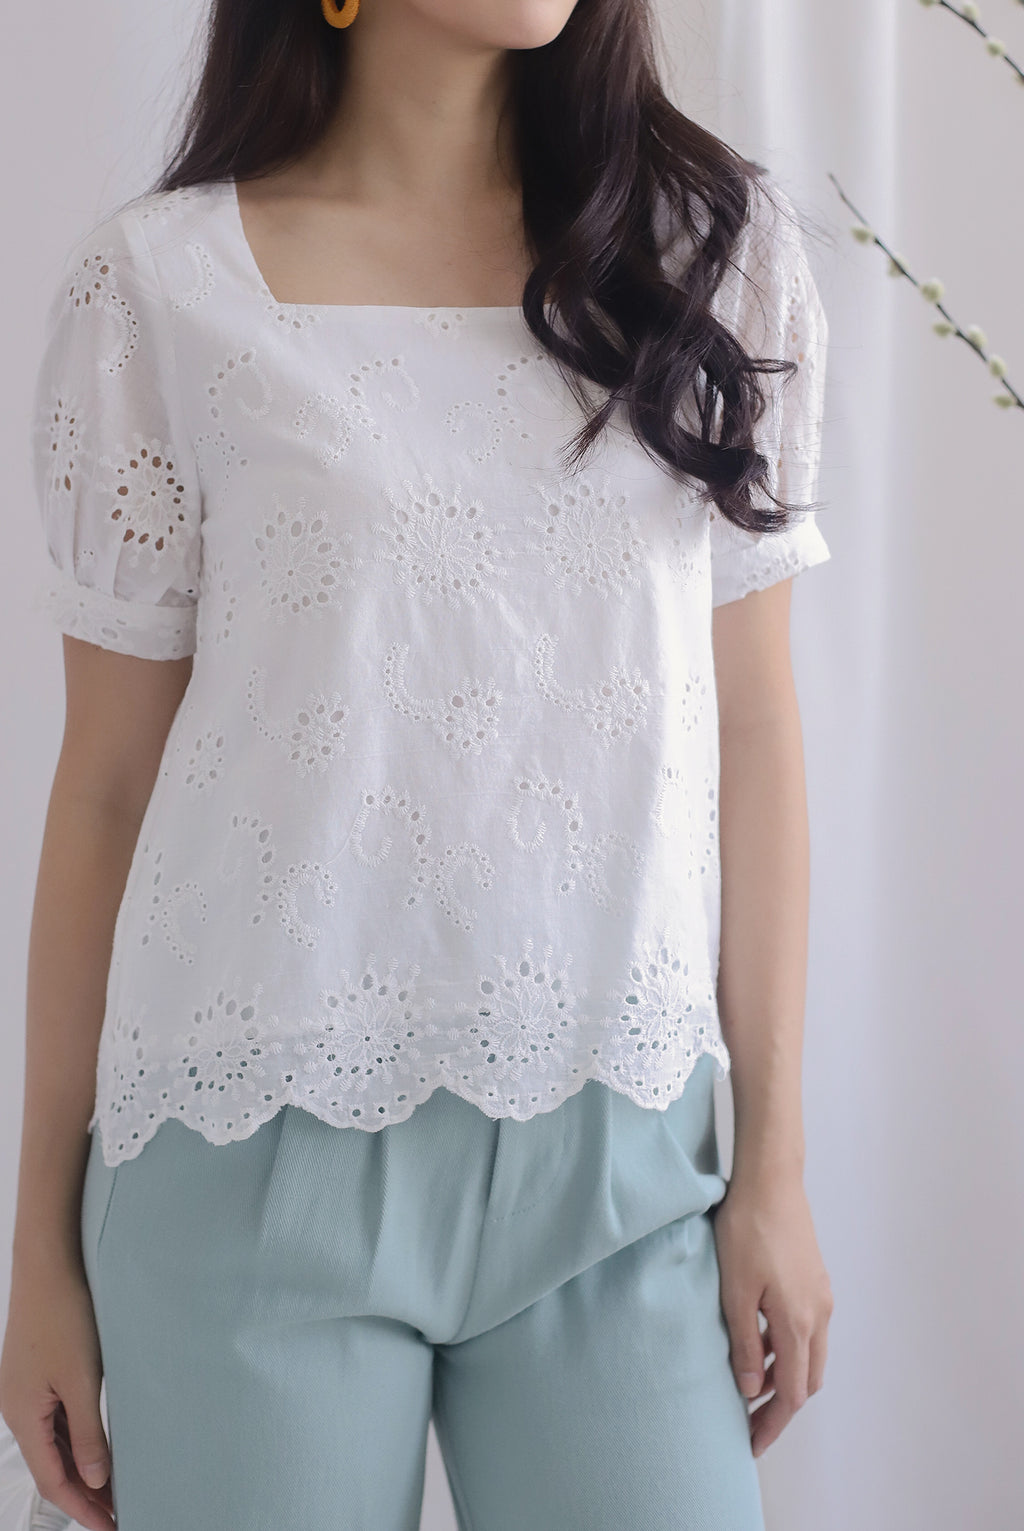 Kylise Eyelet Square Neck Top In White